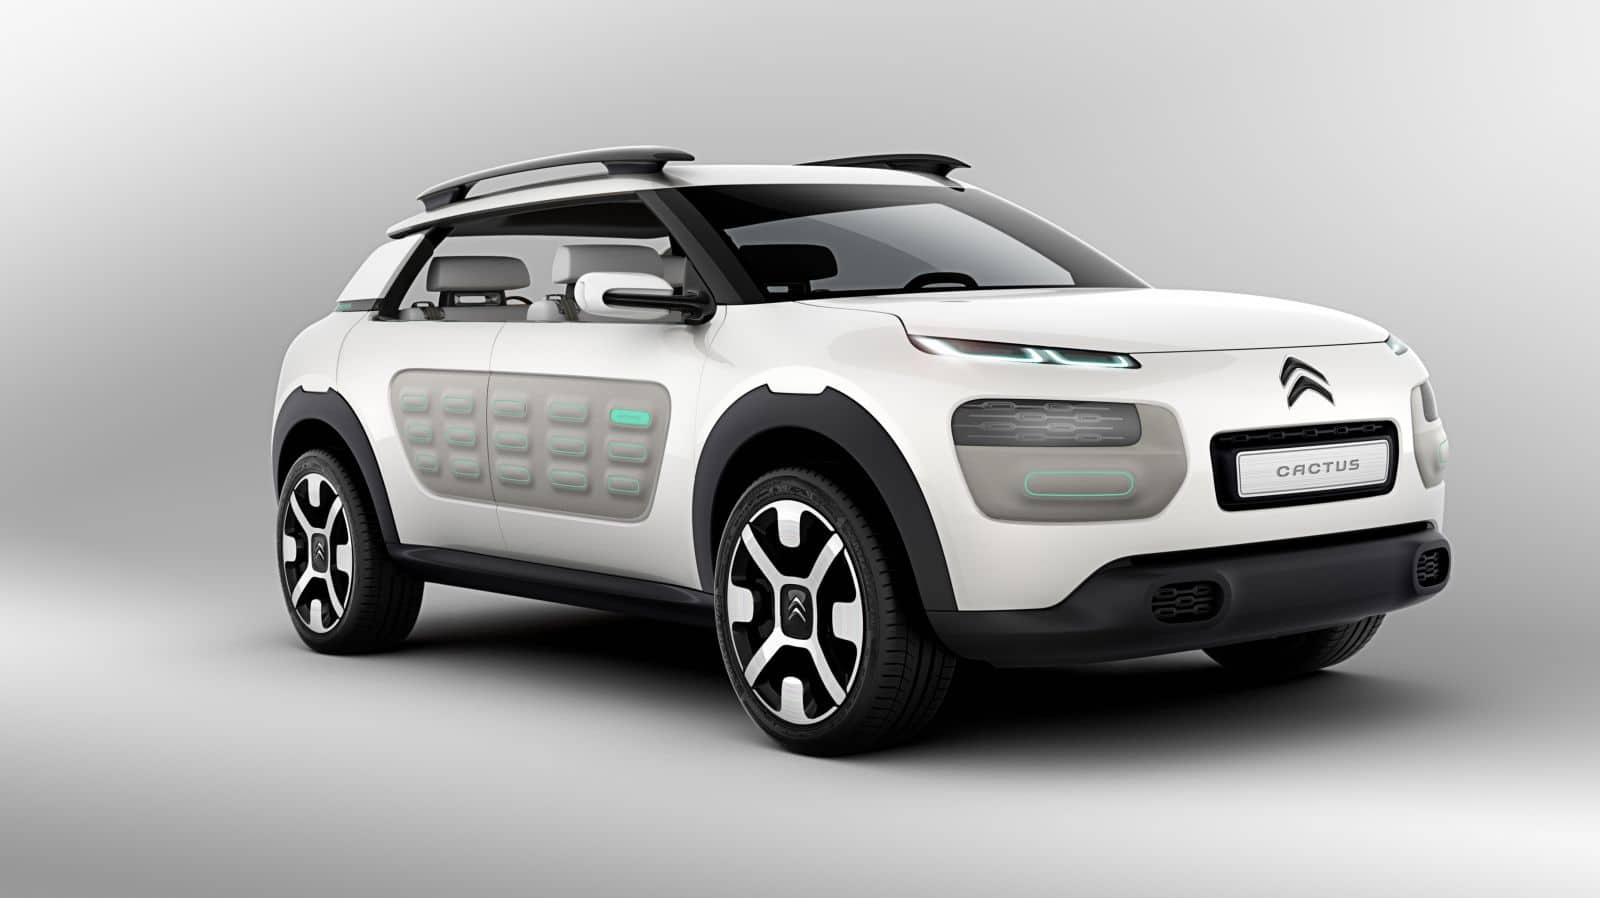 Citroën Cactus : l'anti-superflu arrive